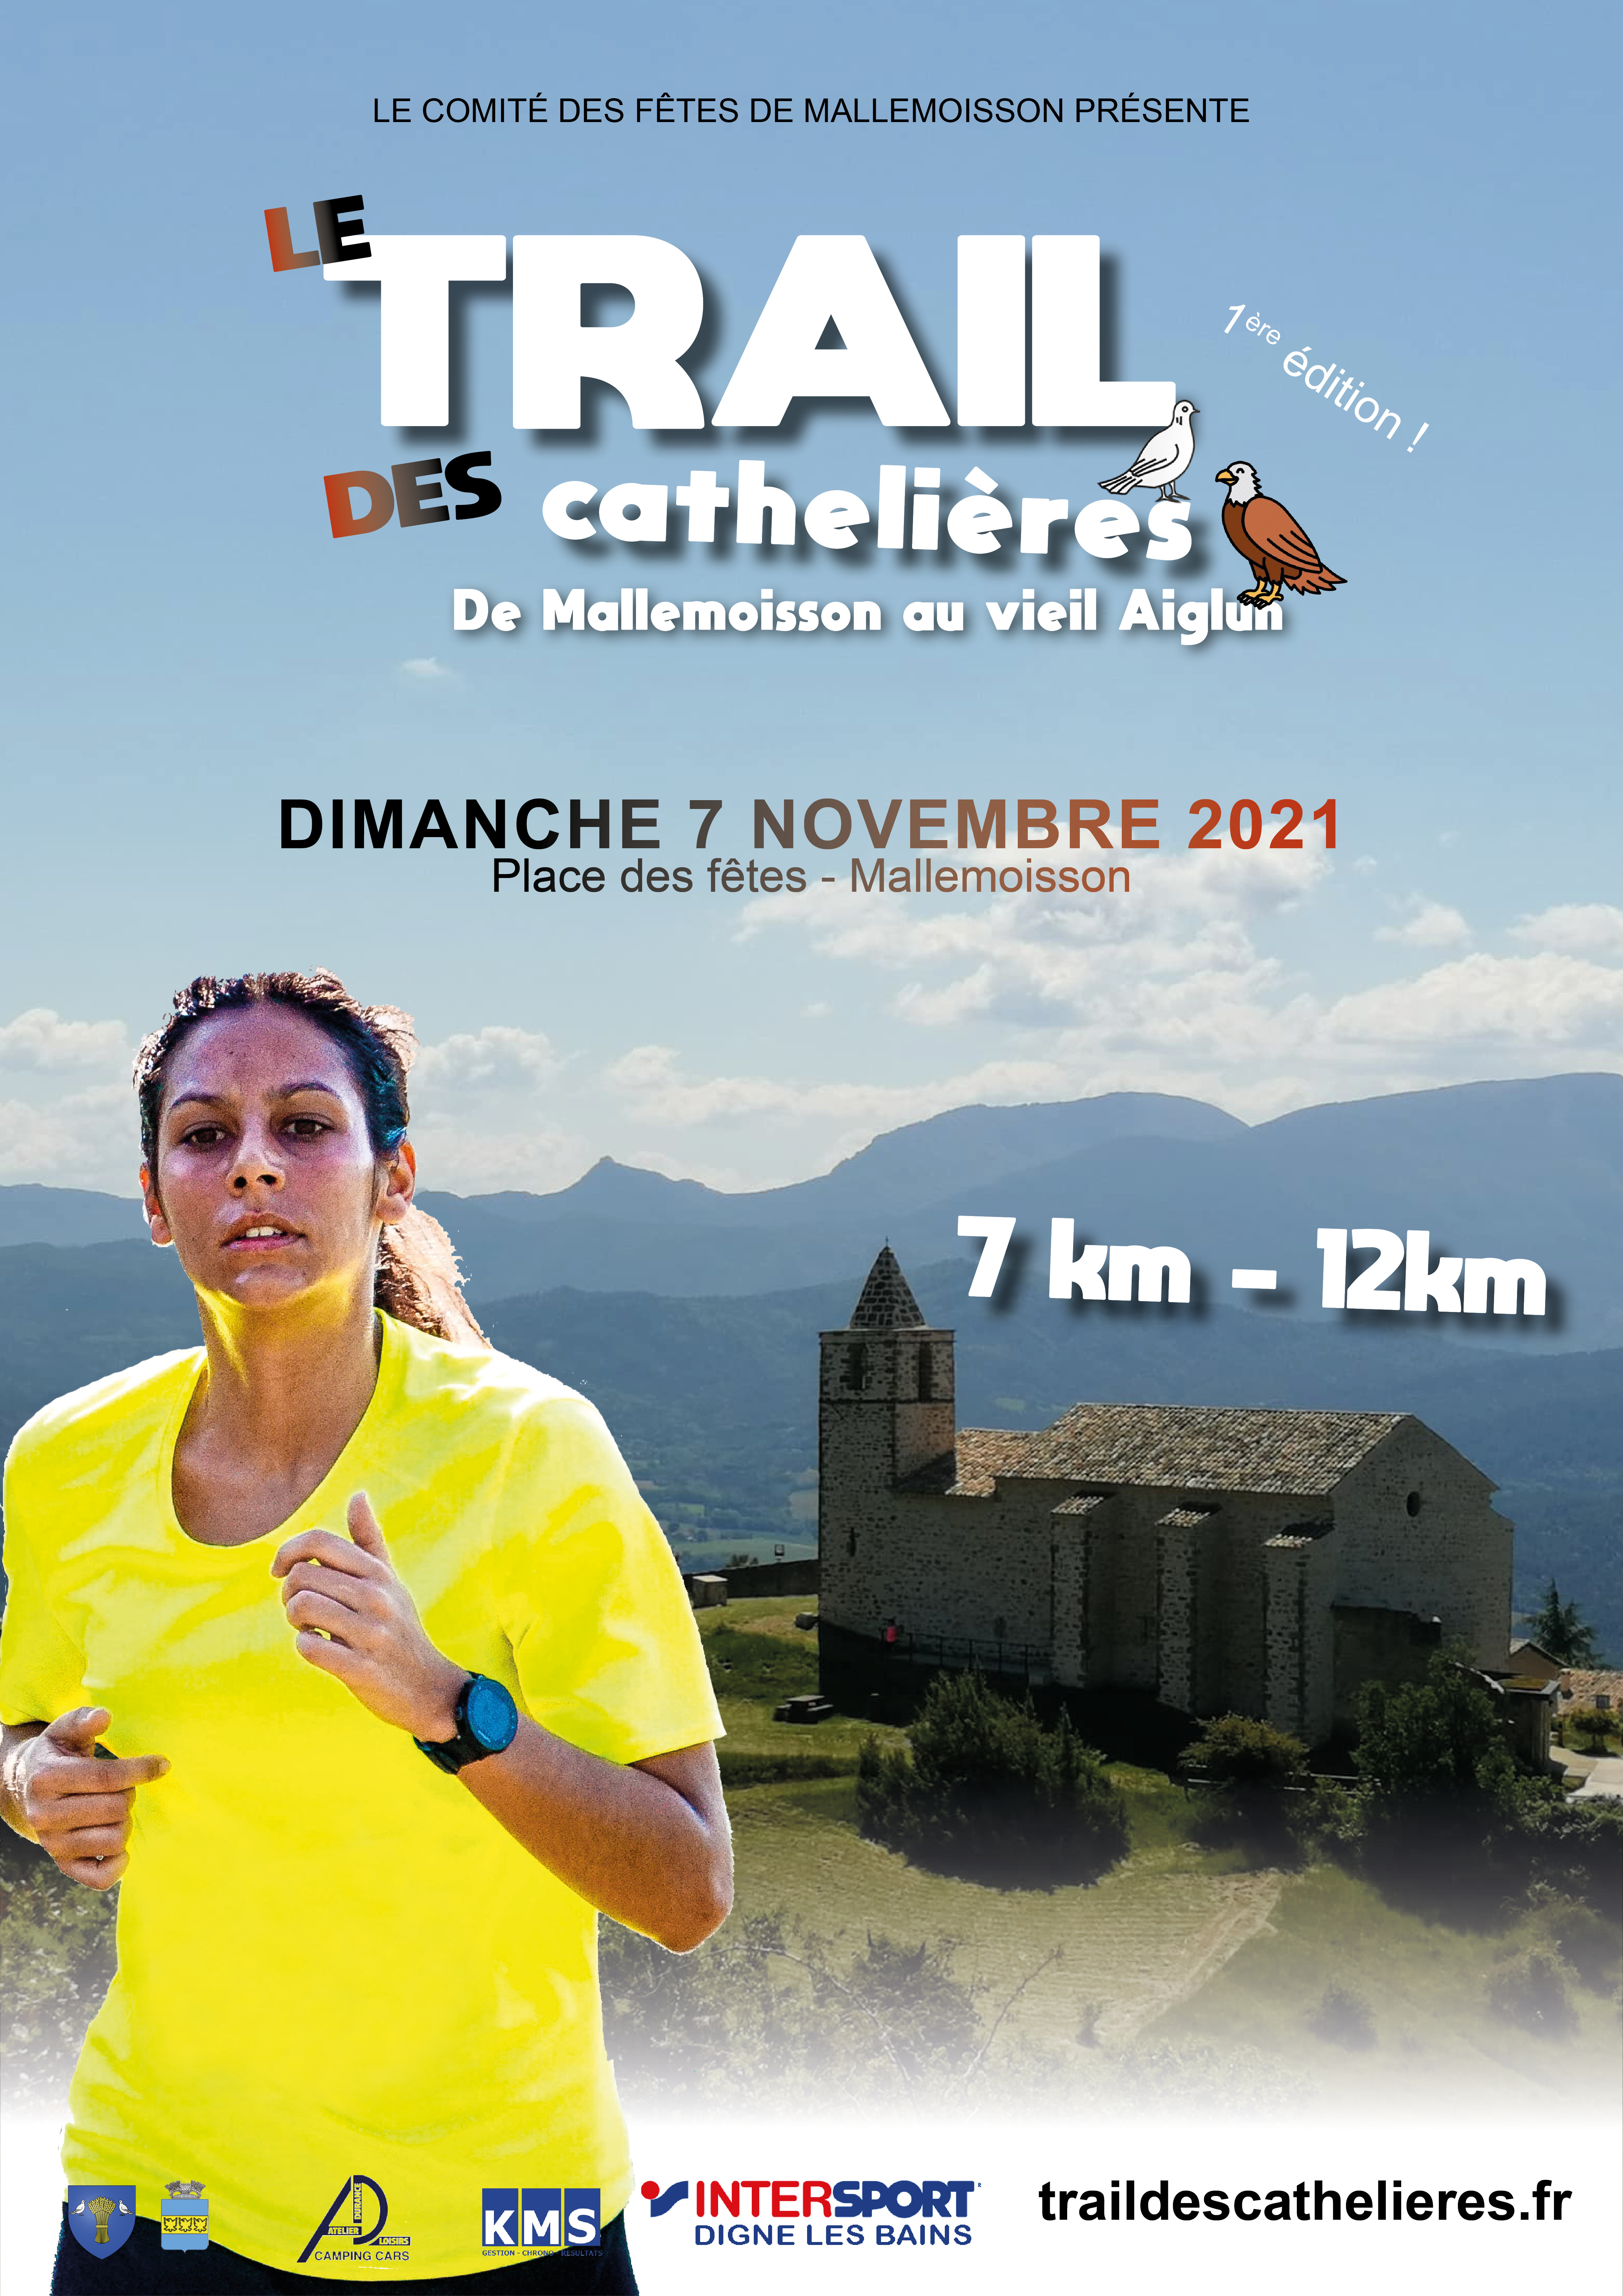 TRAIL DES CATHELIERES